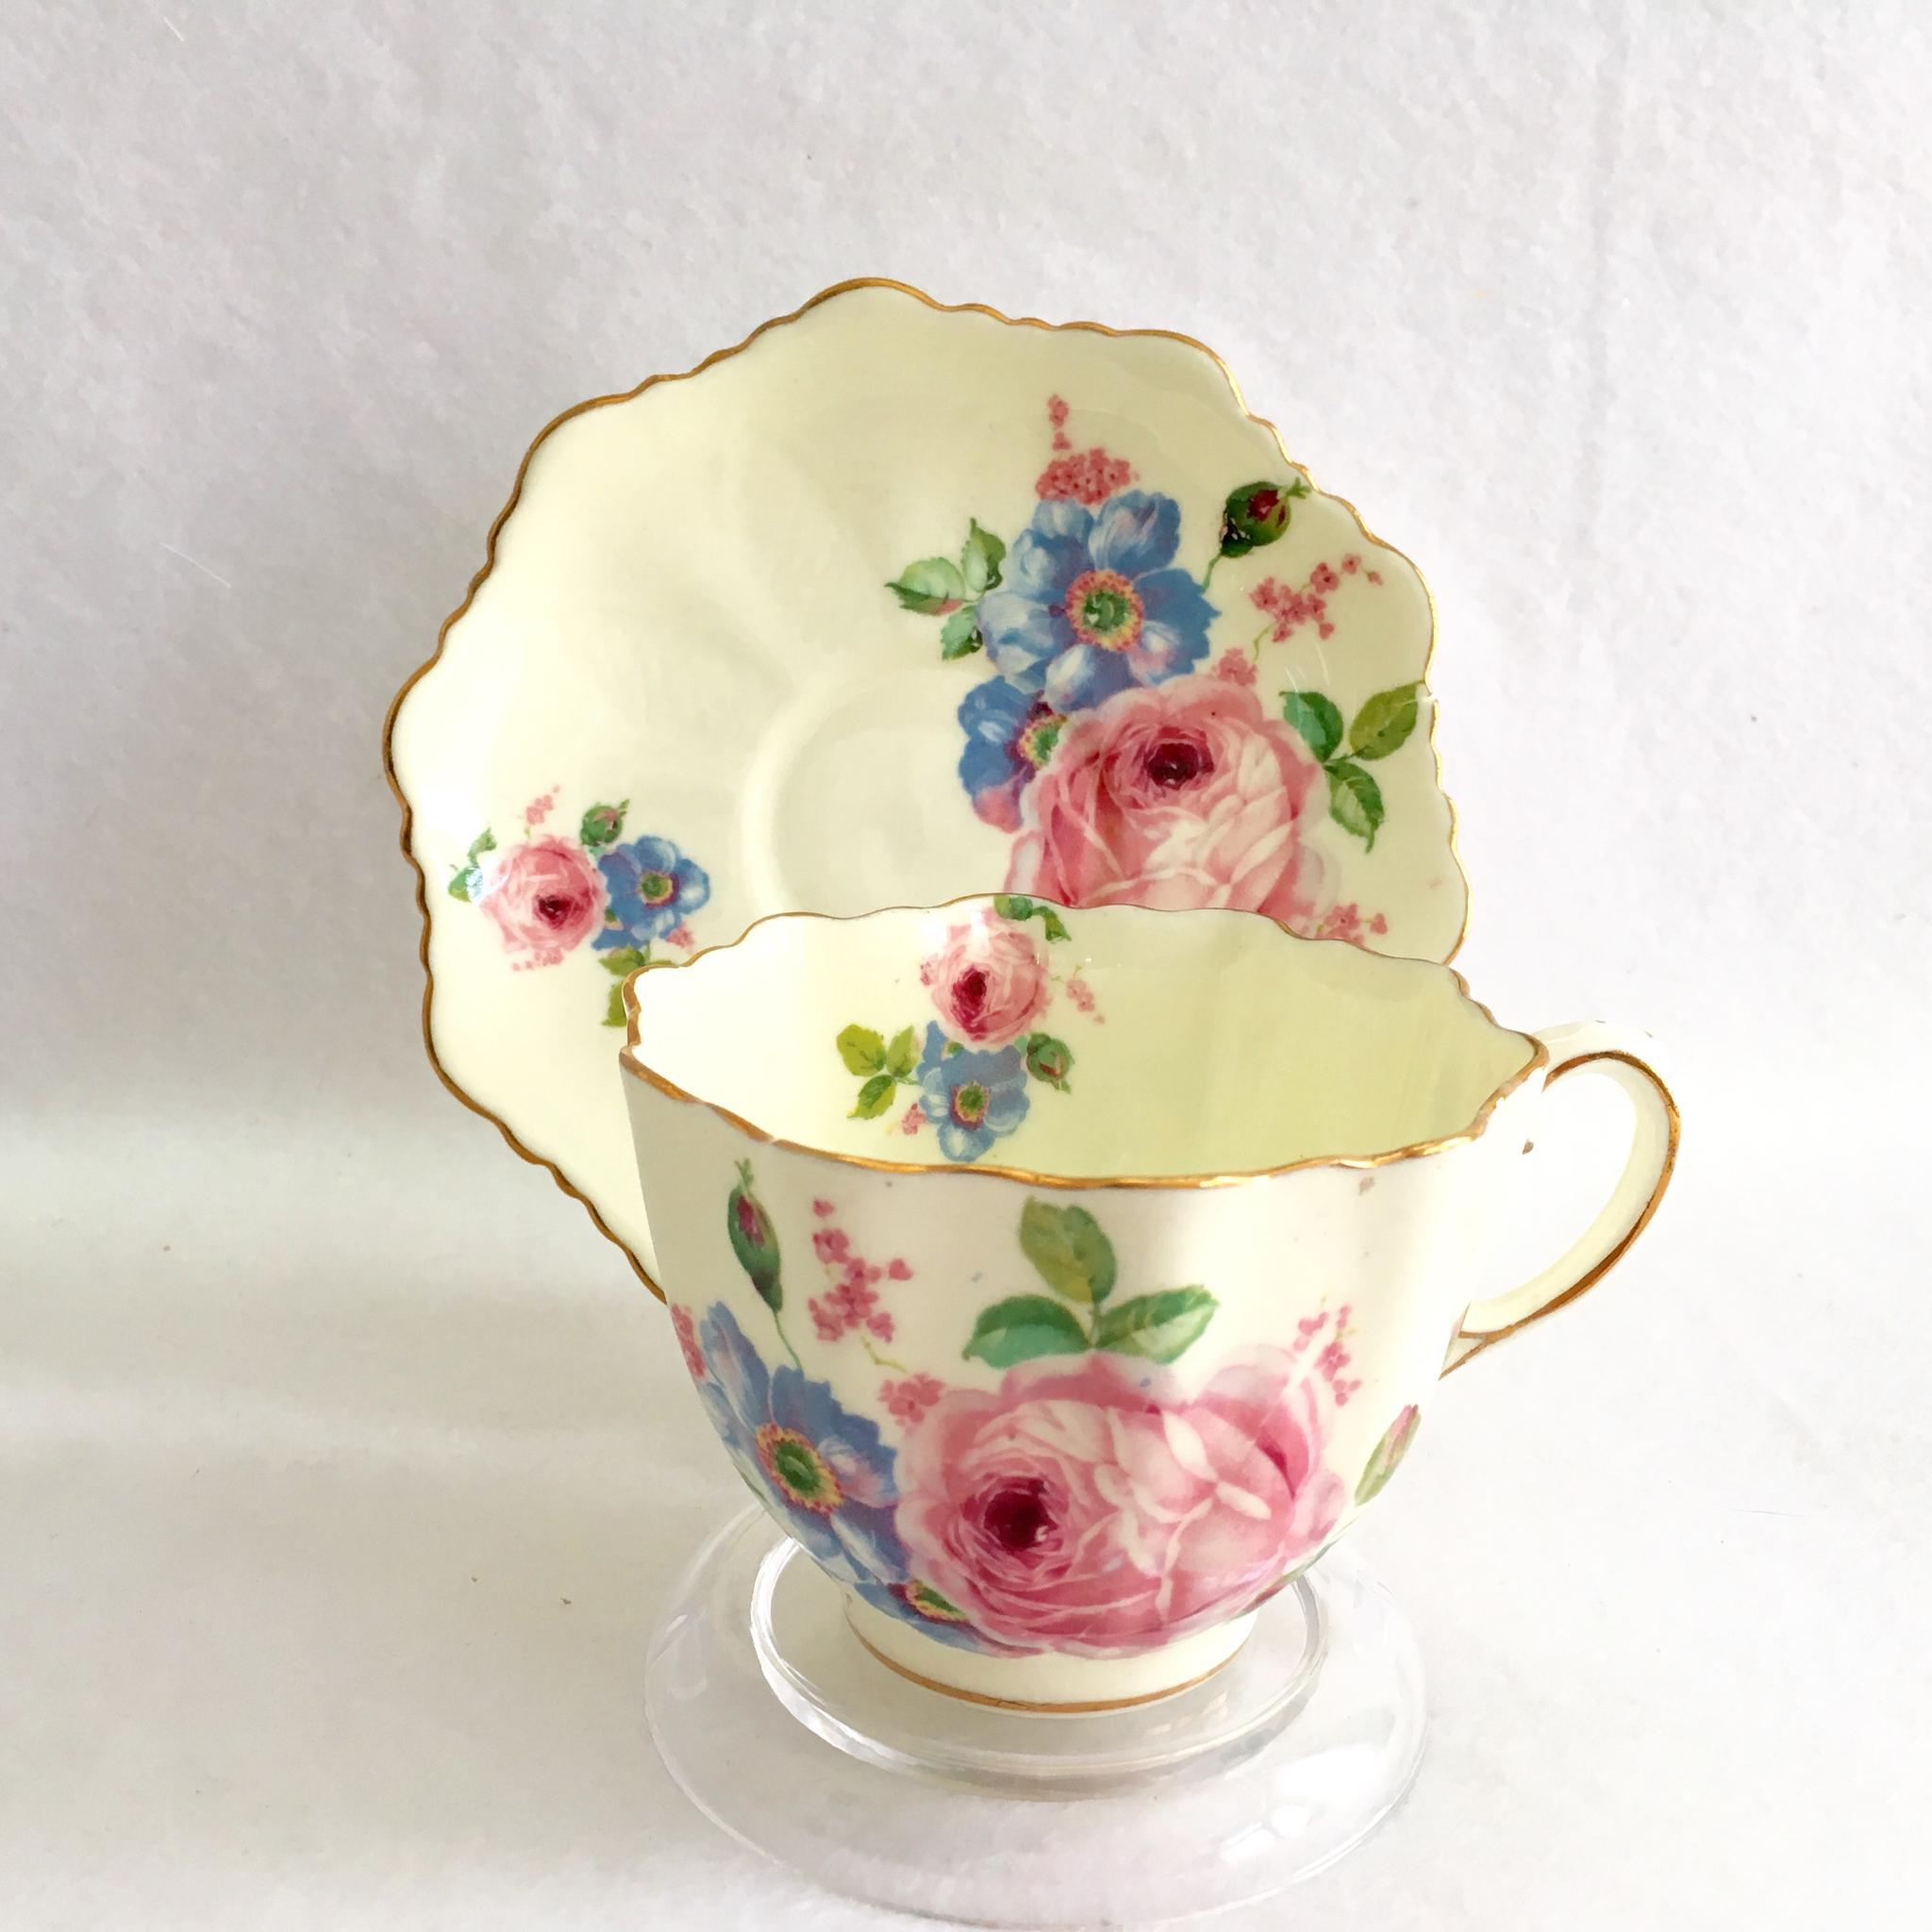 Paragon Bone China S6507 Yellow with Pink Rose Motif Teacup and Saucer